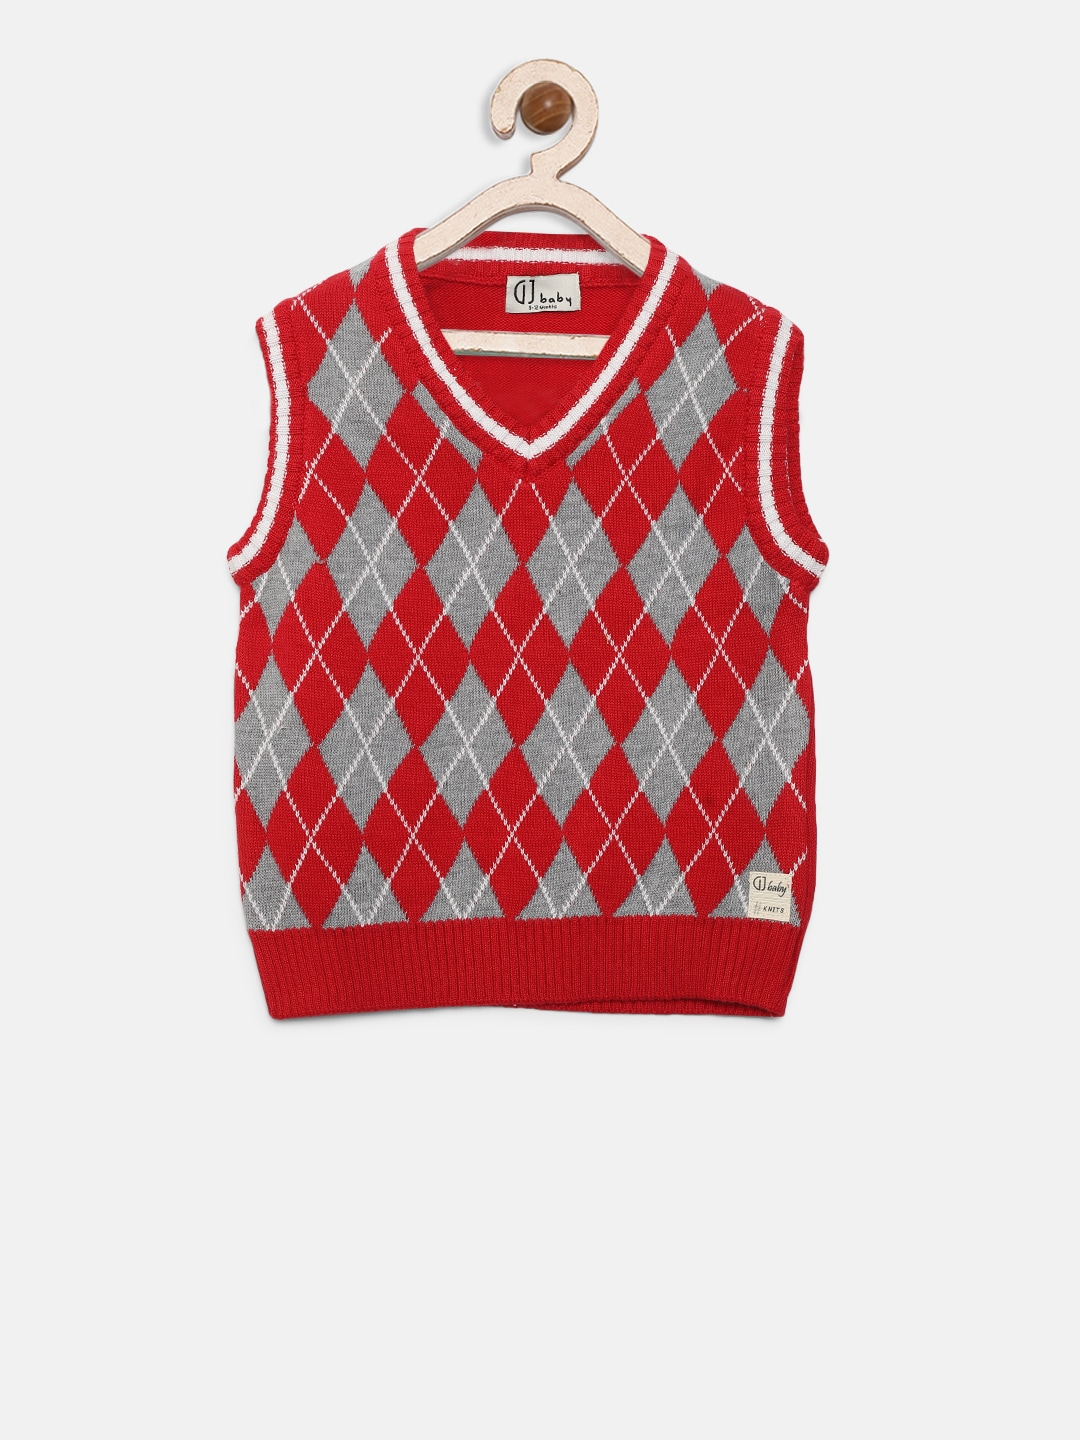 db5934f87 Sleeveless Sweaters - Buy Sleeveless Sweaters Online in India at ...